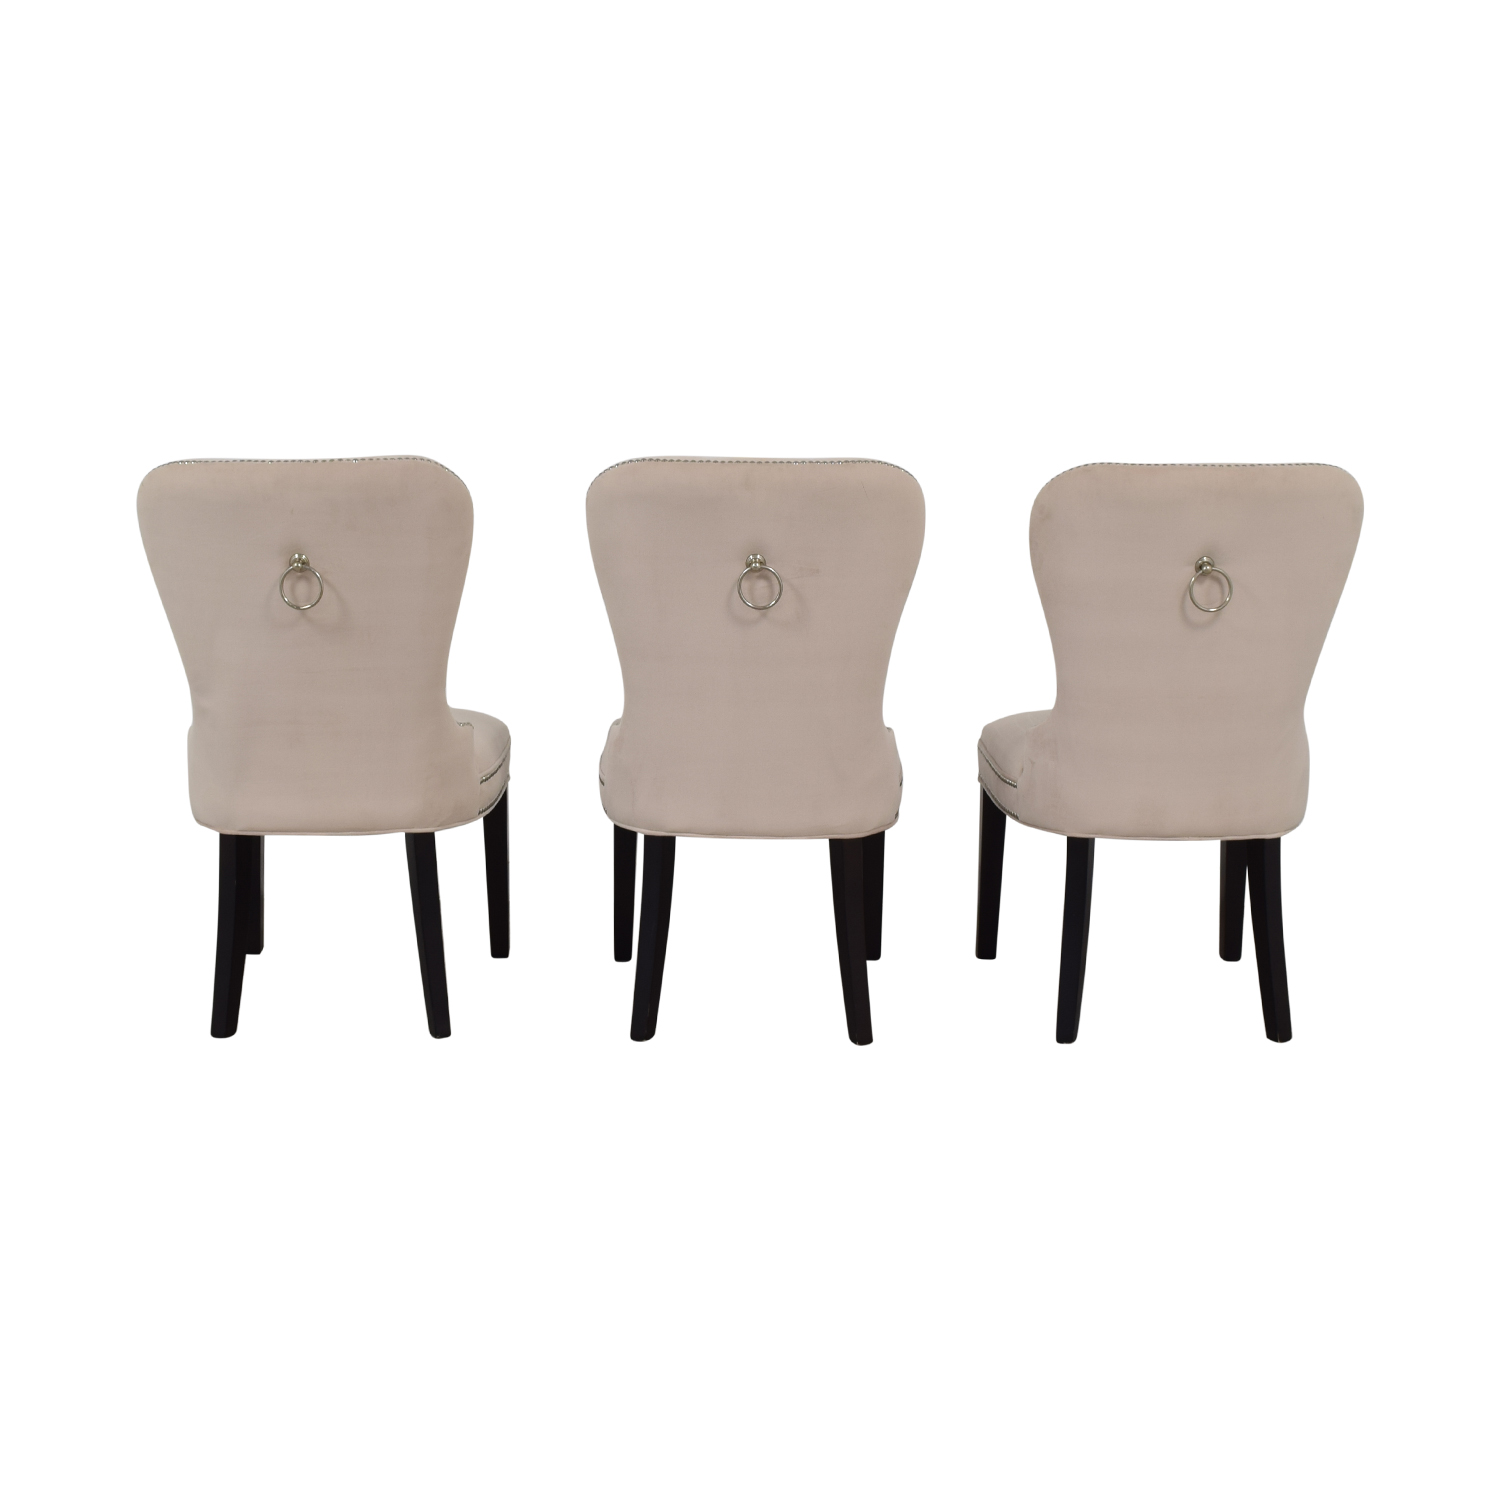 Z Gallerie Z Gallerie Charlotte Cream Tufted Nailhead Dining Chairs used